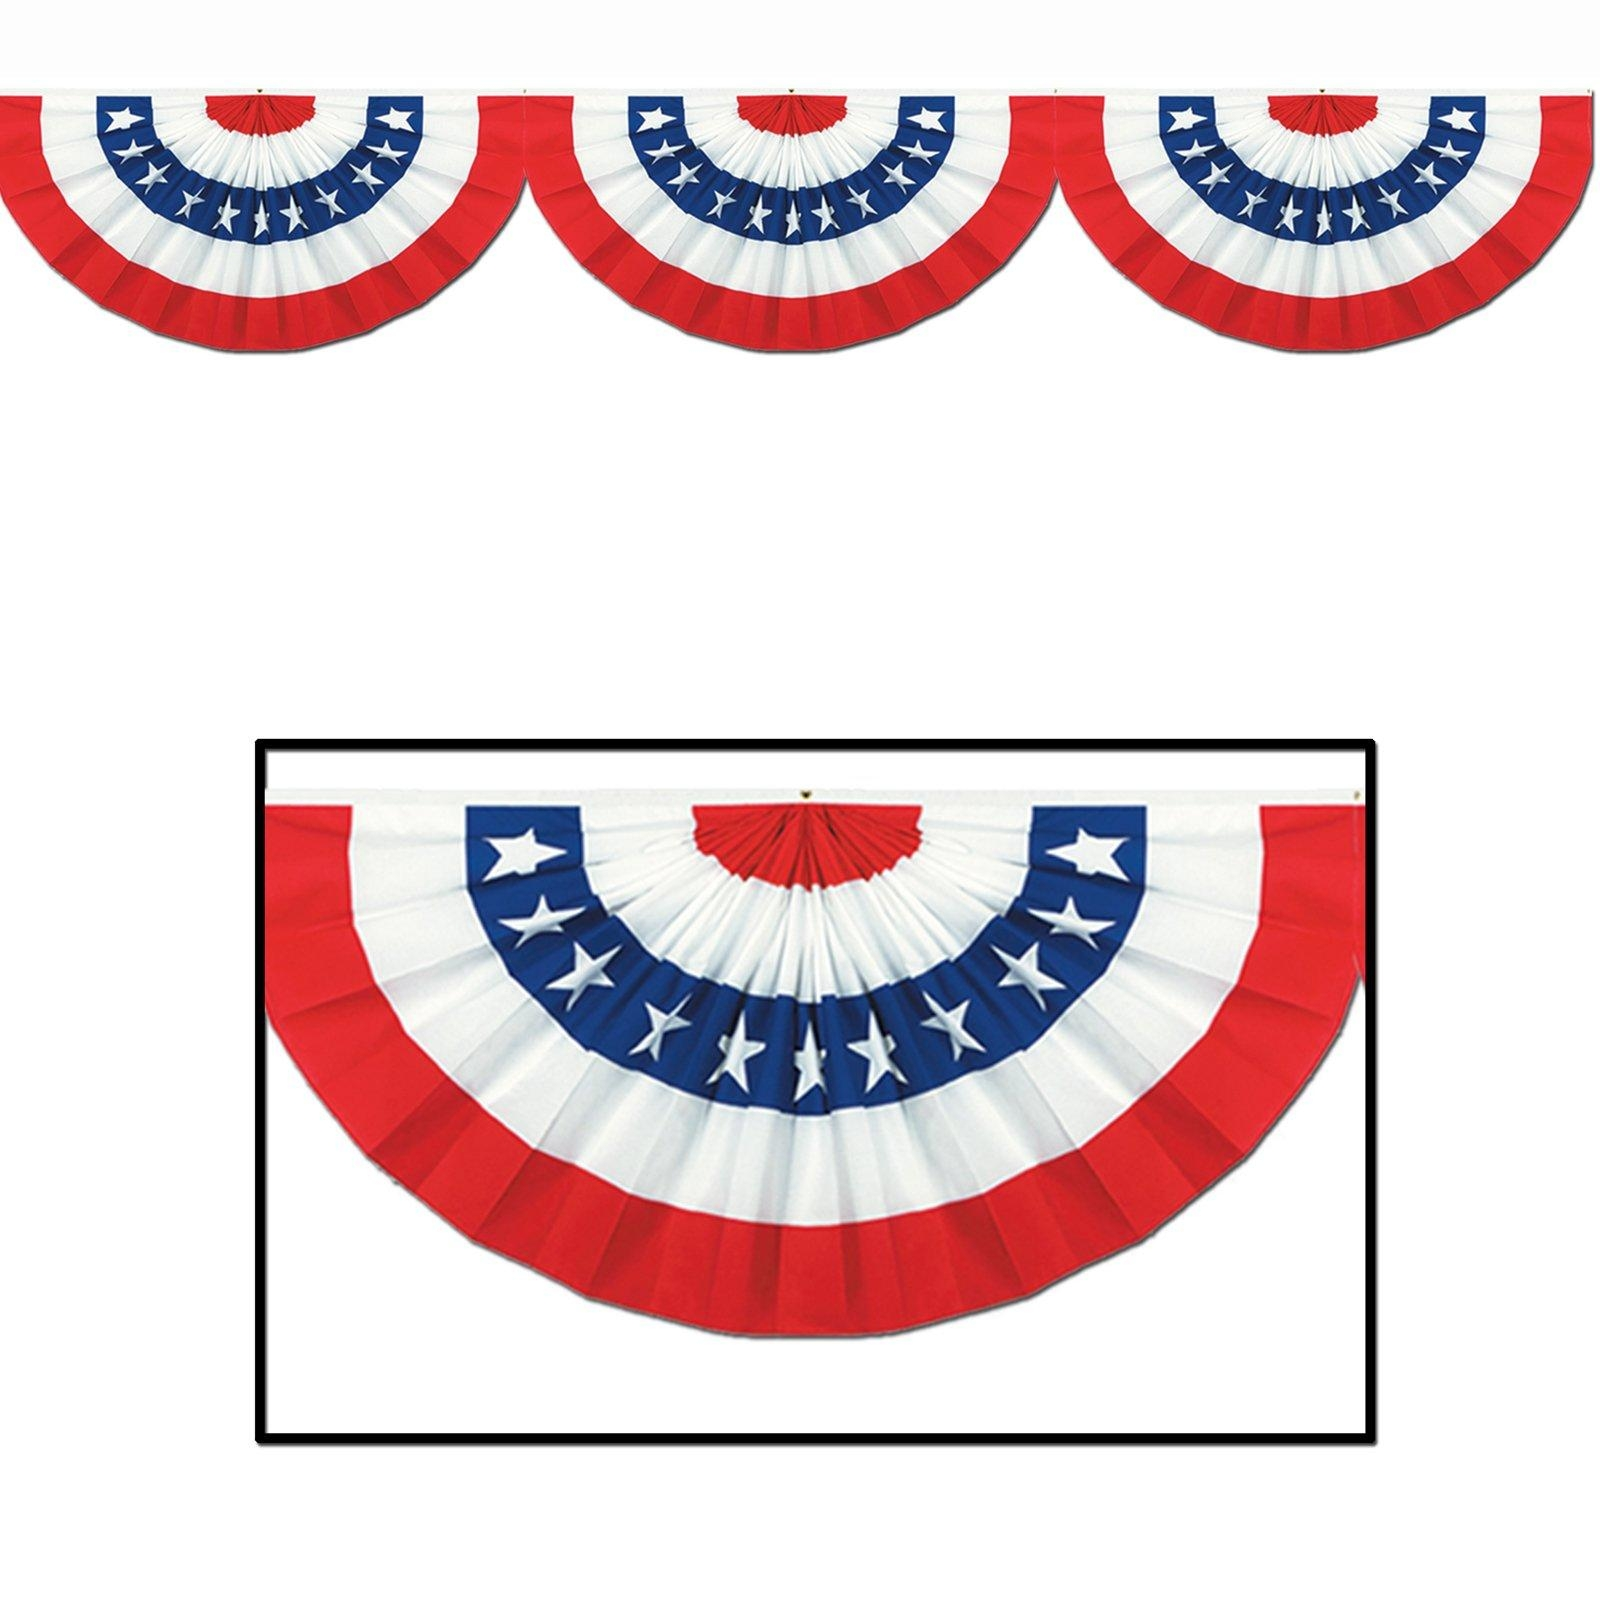 Patriotic bunting clipart graphic library stock Patriotic Banner Cliparts | Free download best Patriotic ... graphic library stock